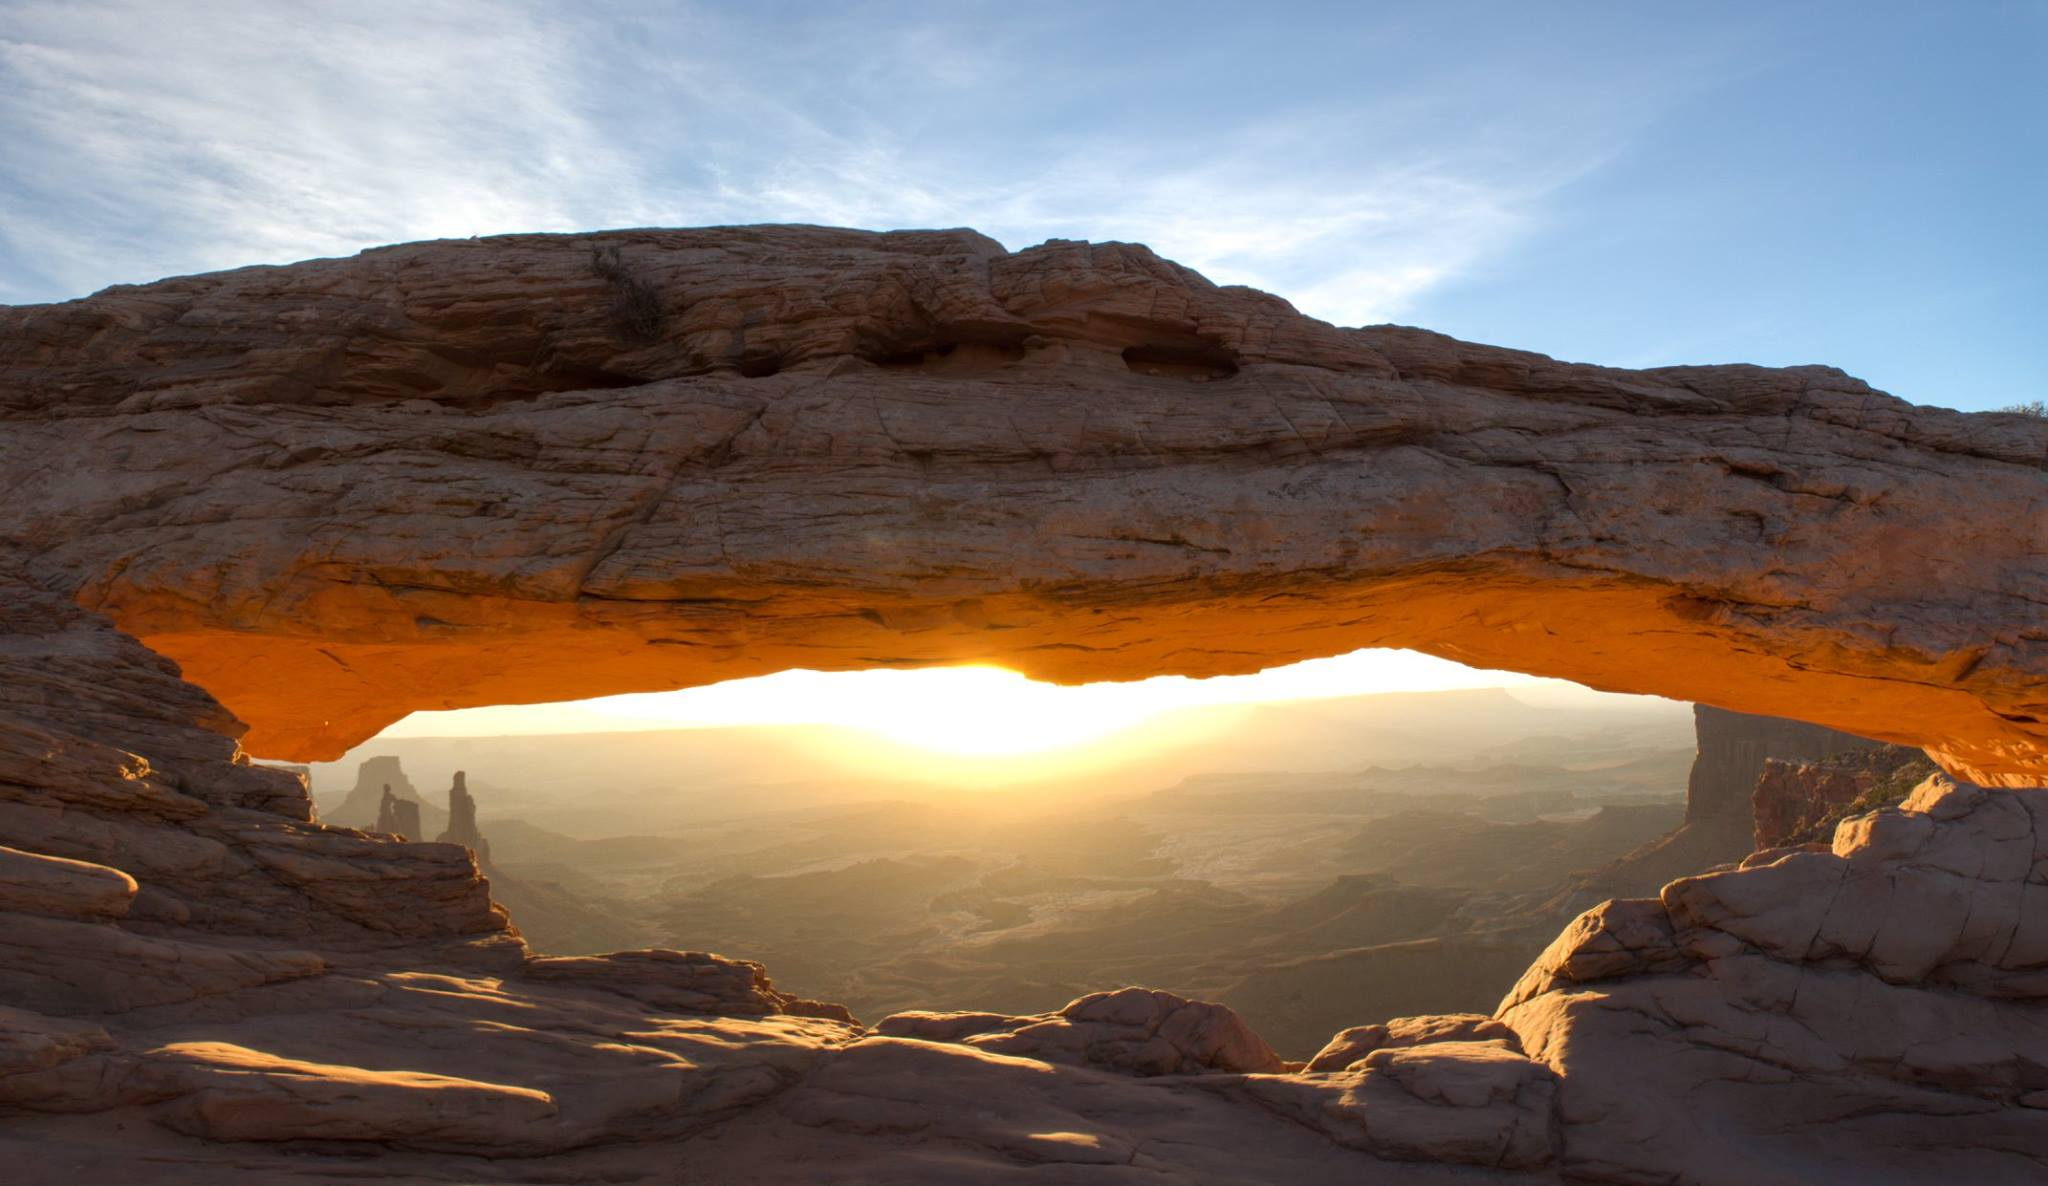 Sun setting at Canyonlands National Park